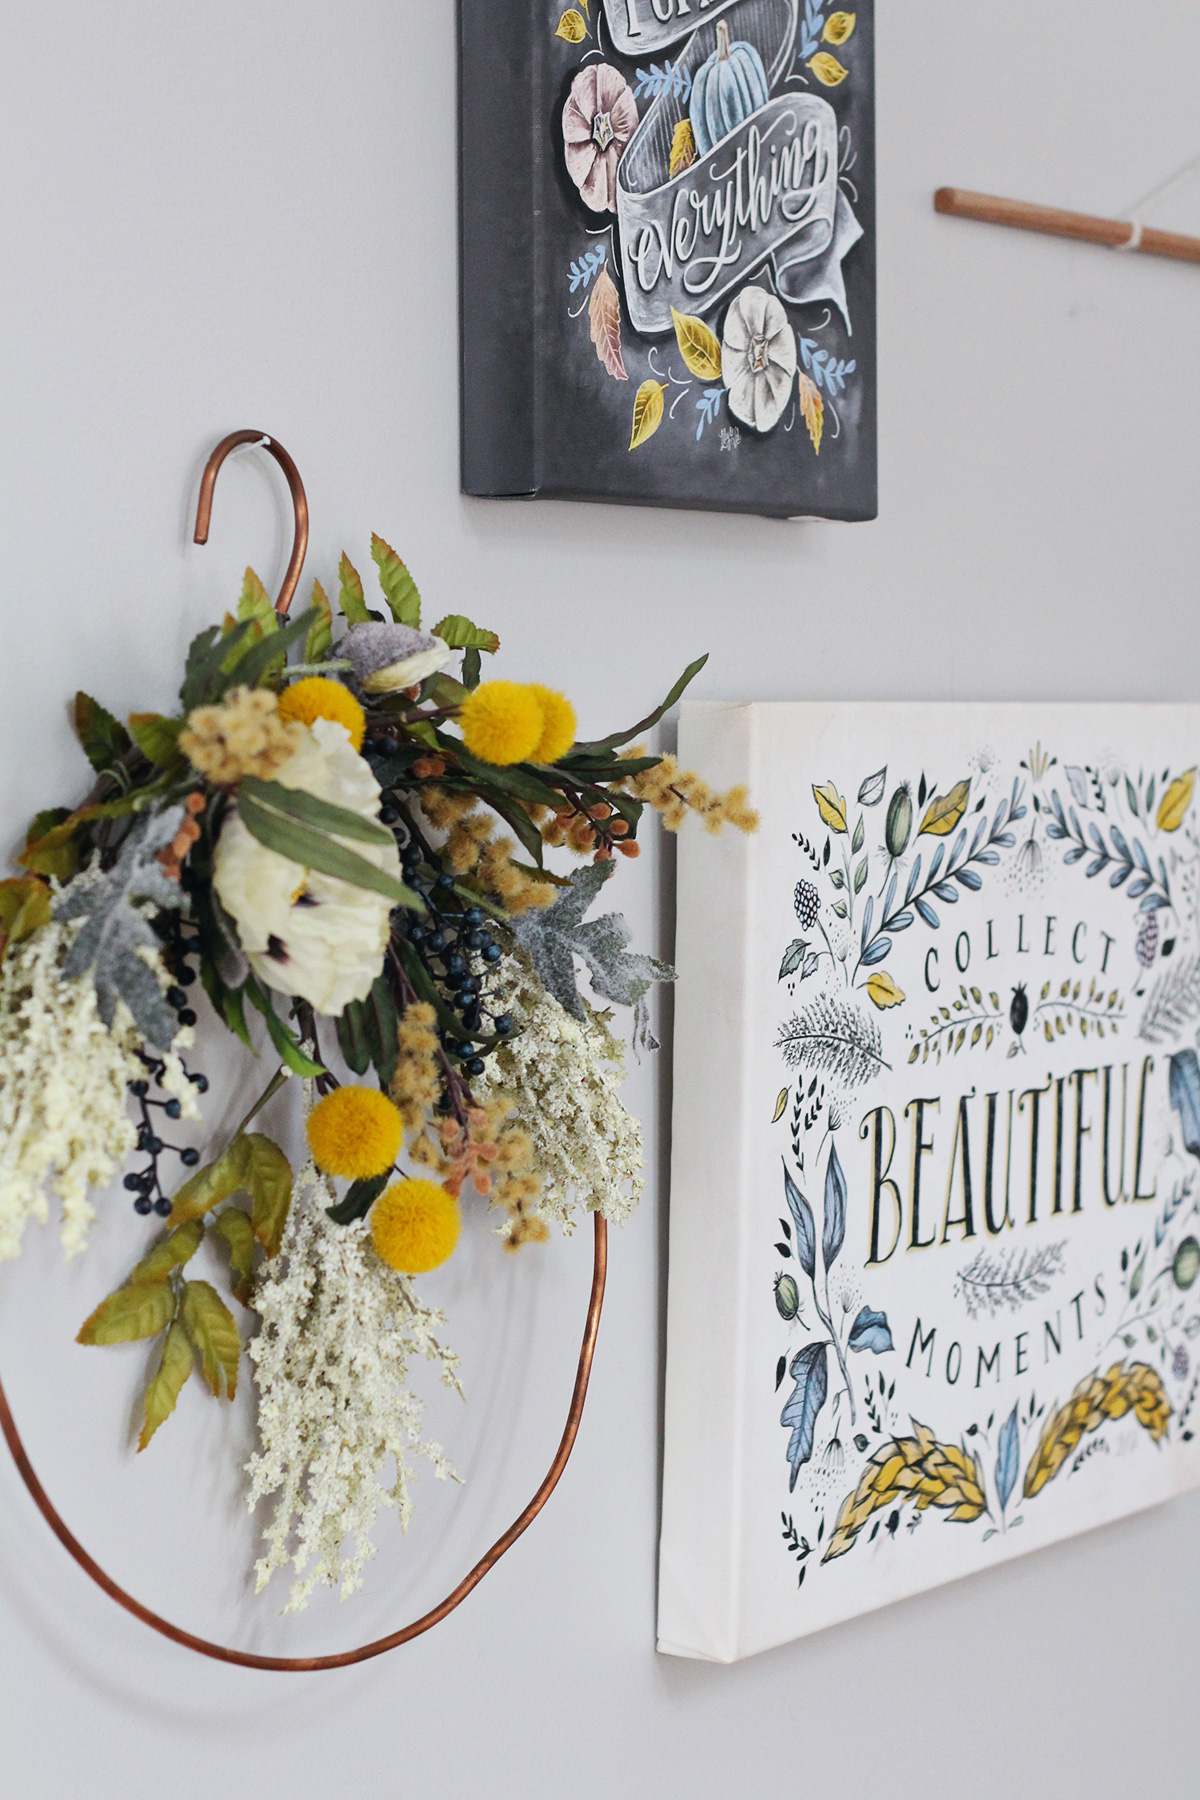 Lily & Val Canvas + a wreath displayed indoors makes for a lovely gallery wall